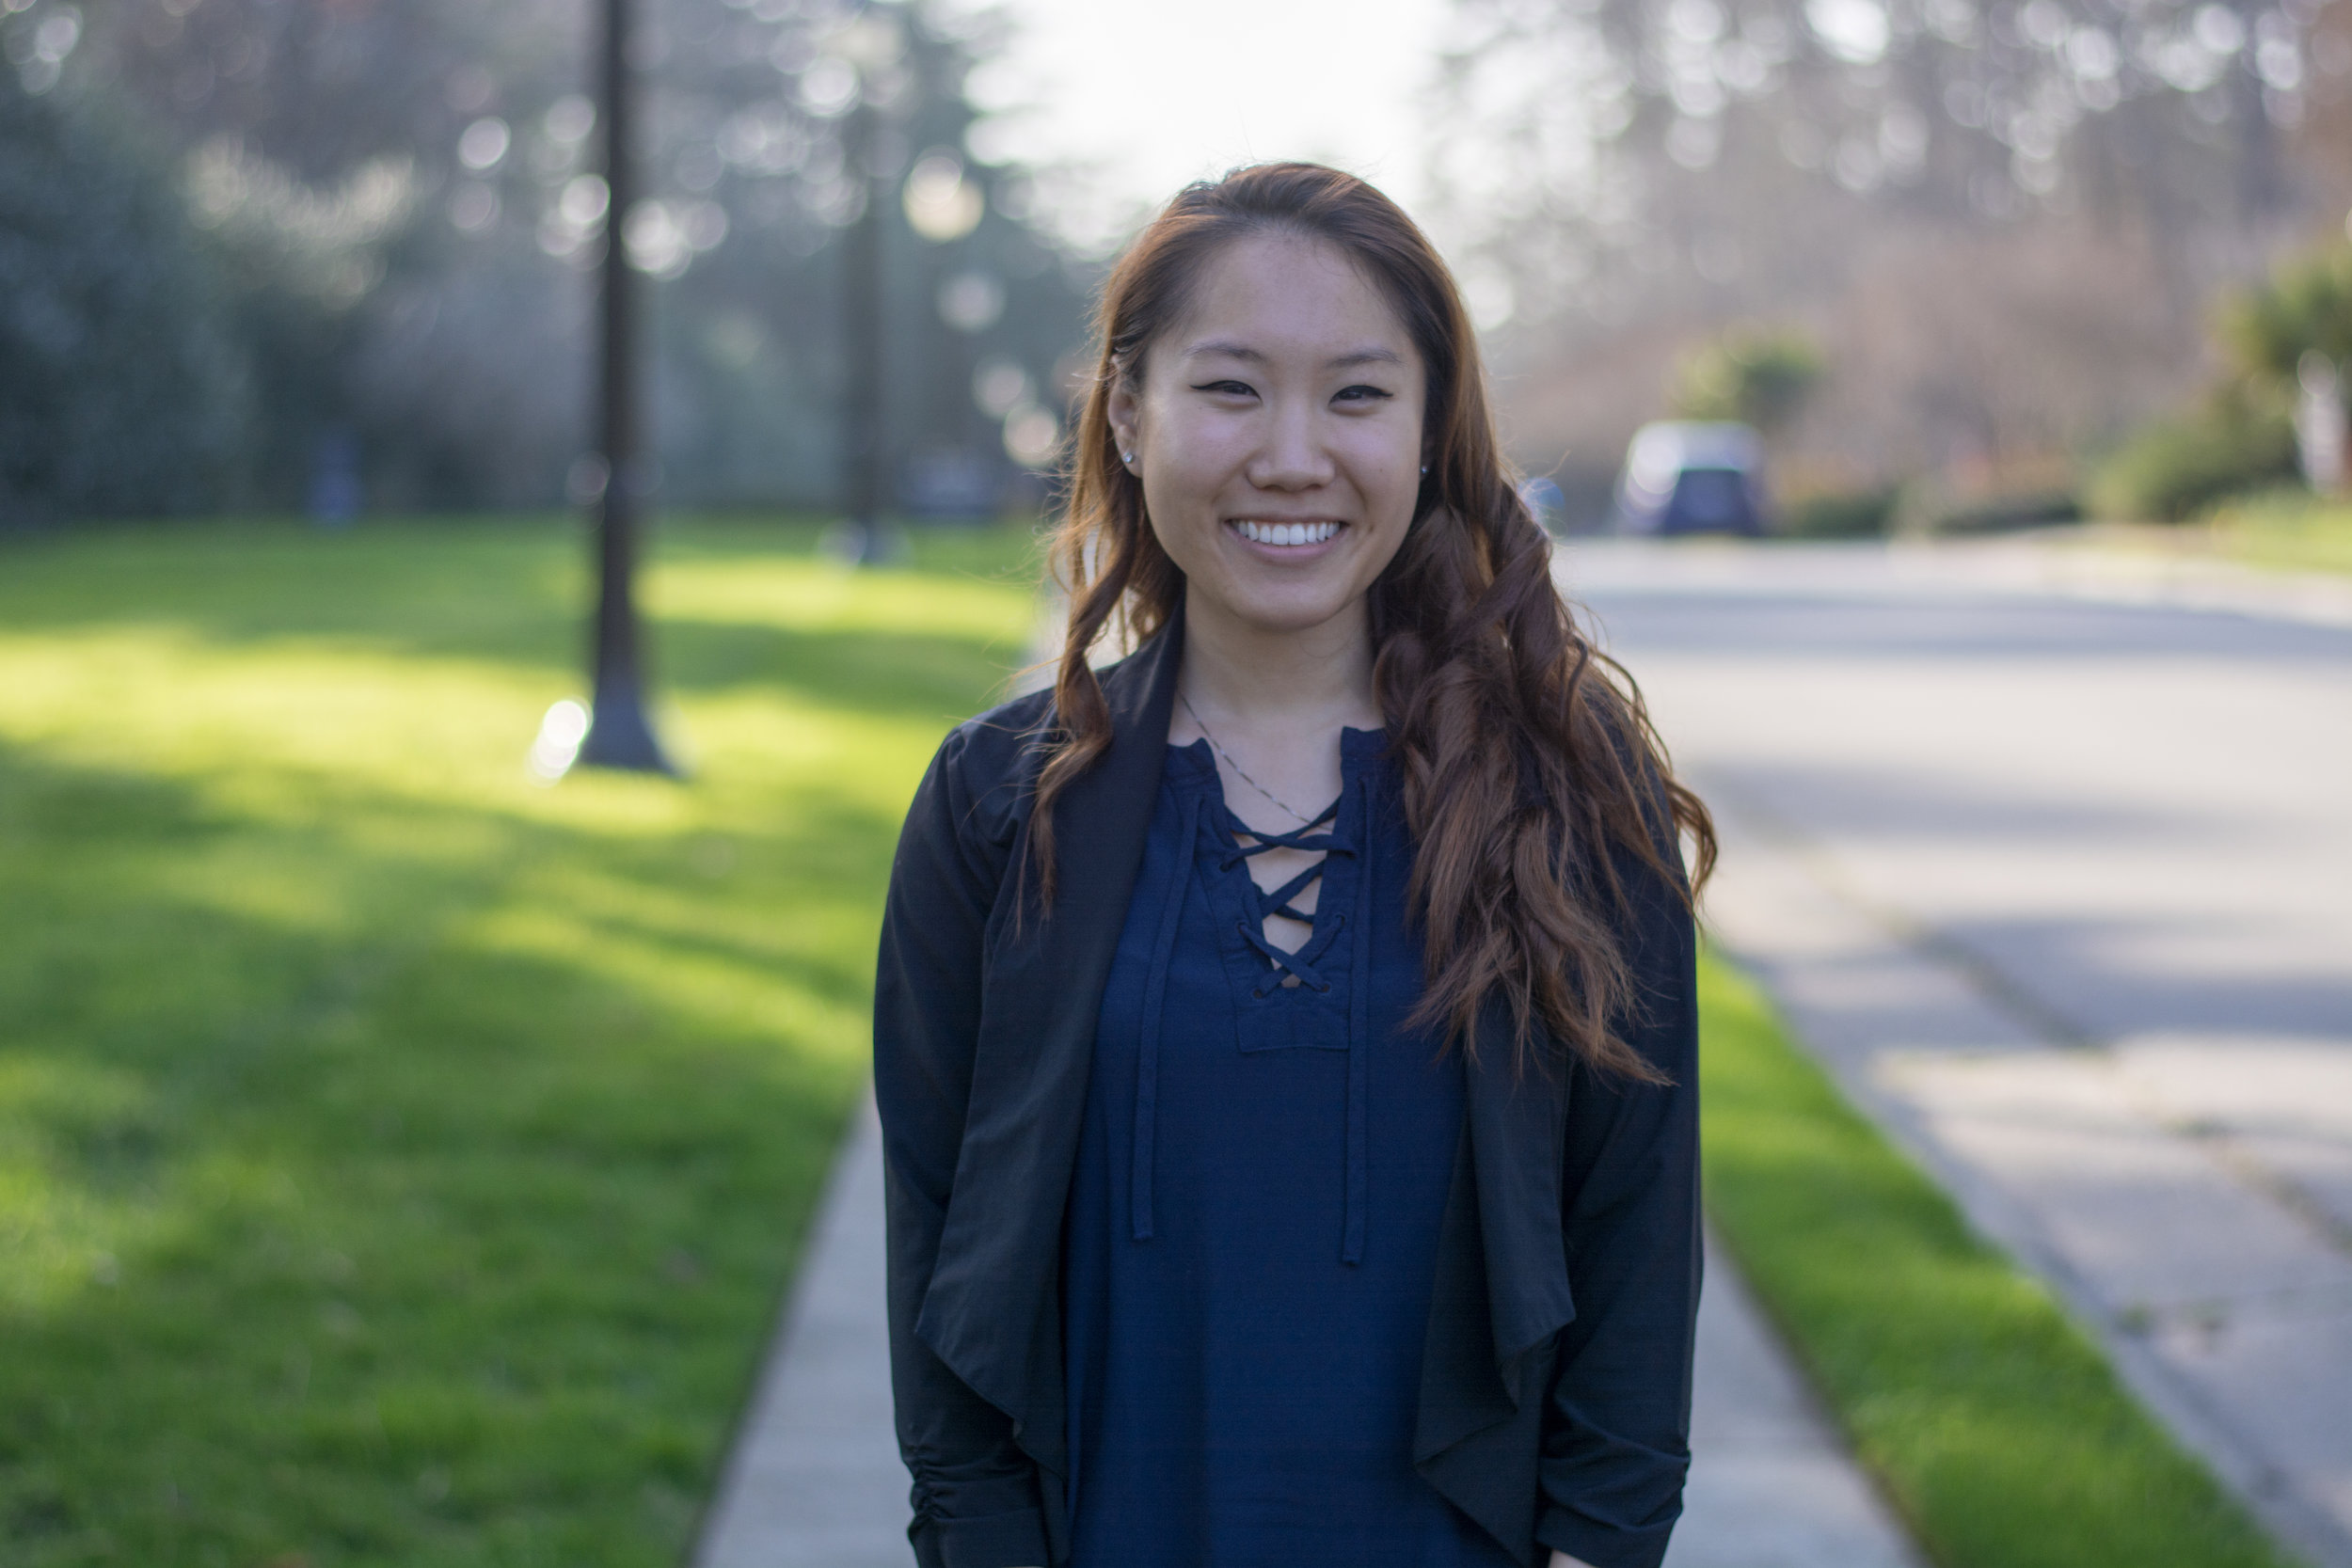 Wendy Li, Co-President - Wendy is originally from Whitestone, NY. She graduated from New York University with a degree in History. Prior to attending Duke Law School, she worked as a litigation paralegal at an international law firm. In her free time, Wendy enjoys indoor bouldering, traveling, and event planning.Other Engagements: Women Law Students Association (Vice President of Finance), Health Law Society's Cancer Pro Bono Project (Volunteer), Westlaw Student Representative1L Summer: Vital Strategies - New York, NY